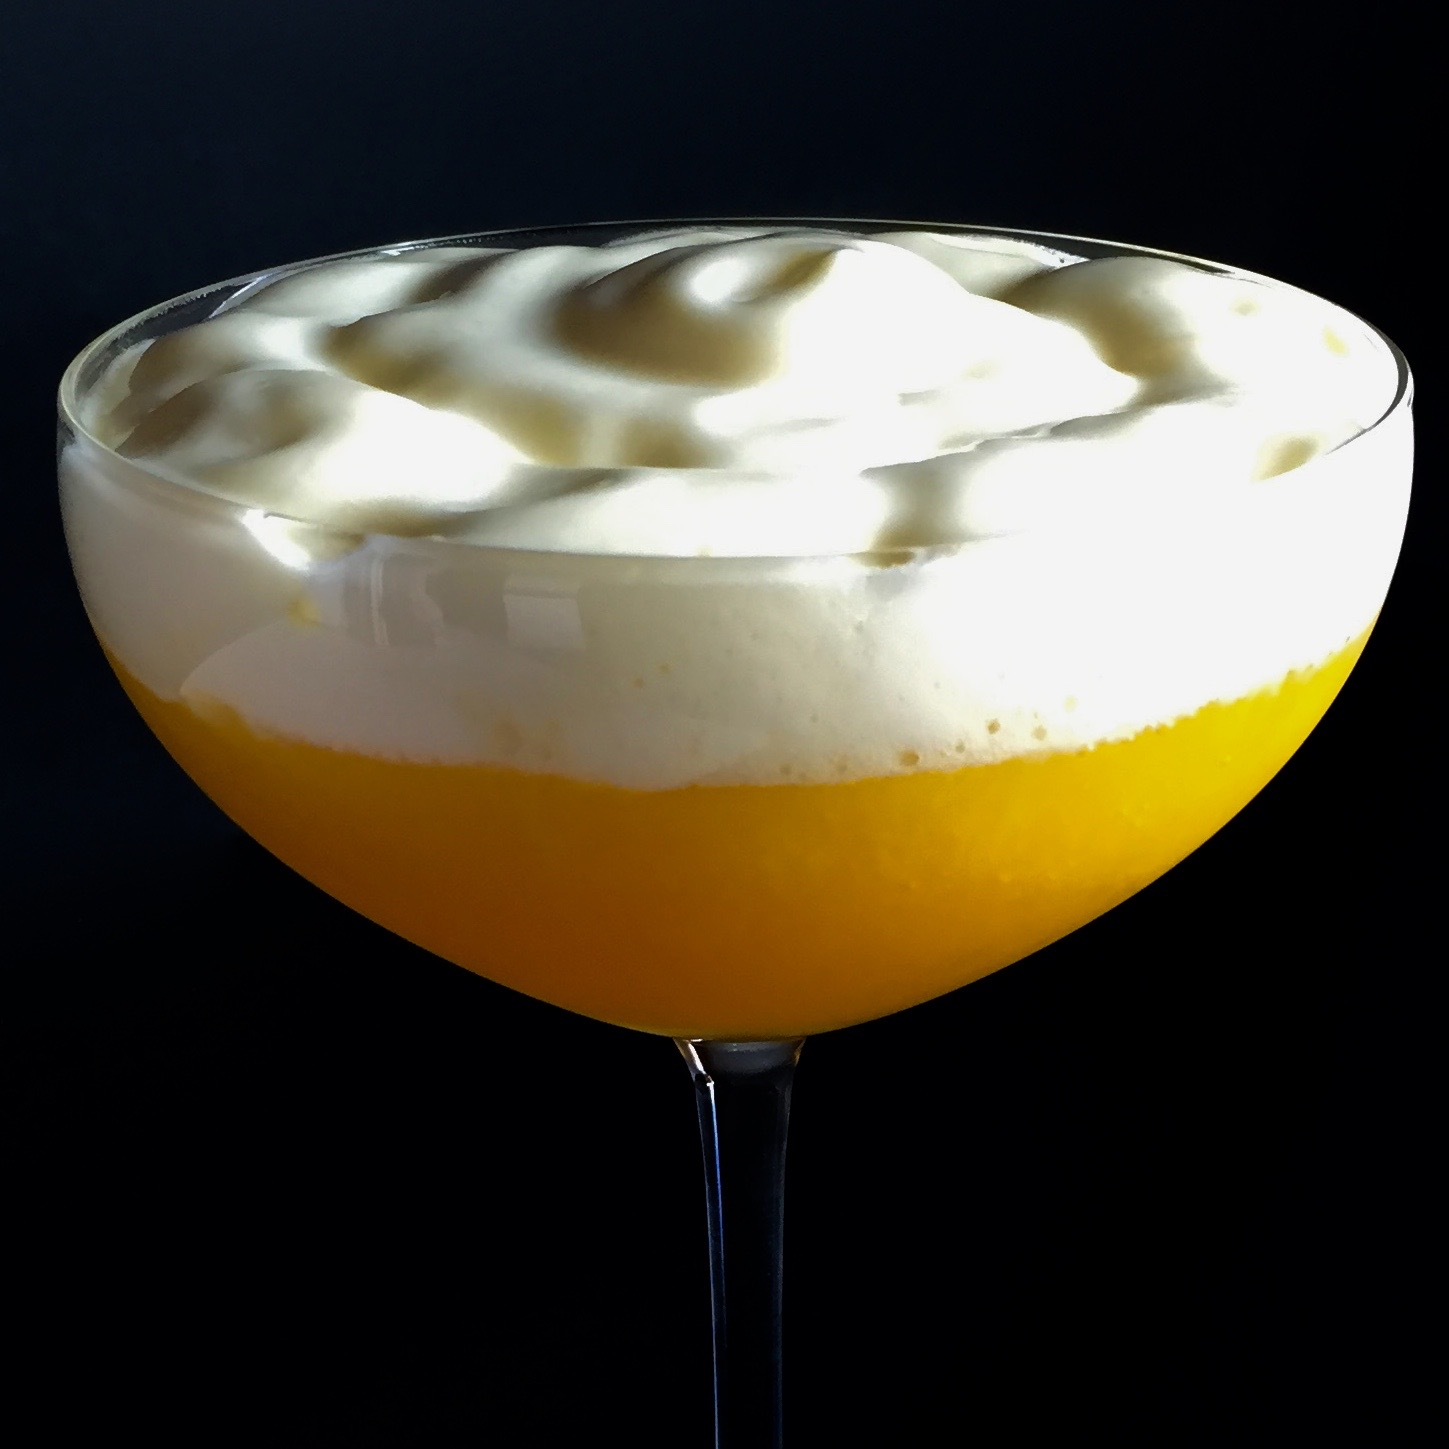 Inspired by the Hot Frozen Gin Fizz served up at Ferran Adria's El ...